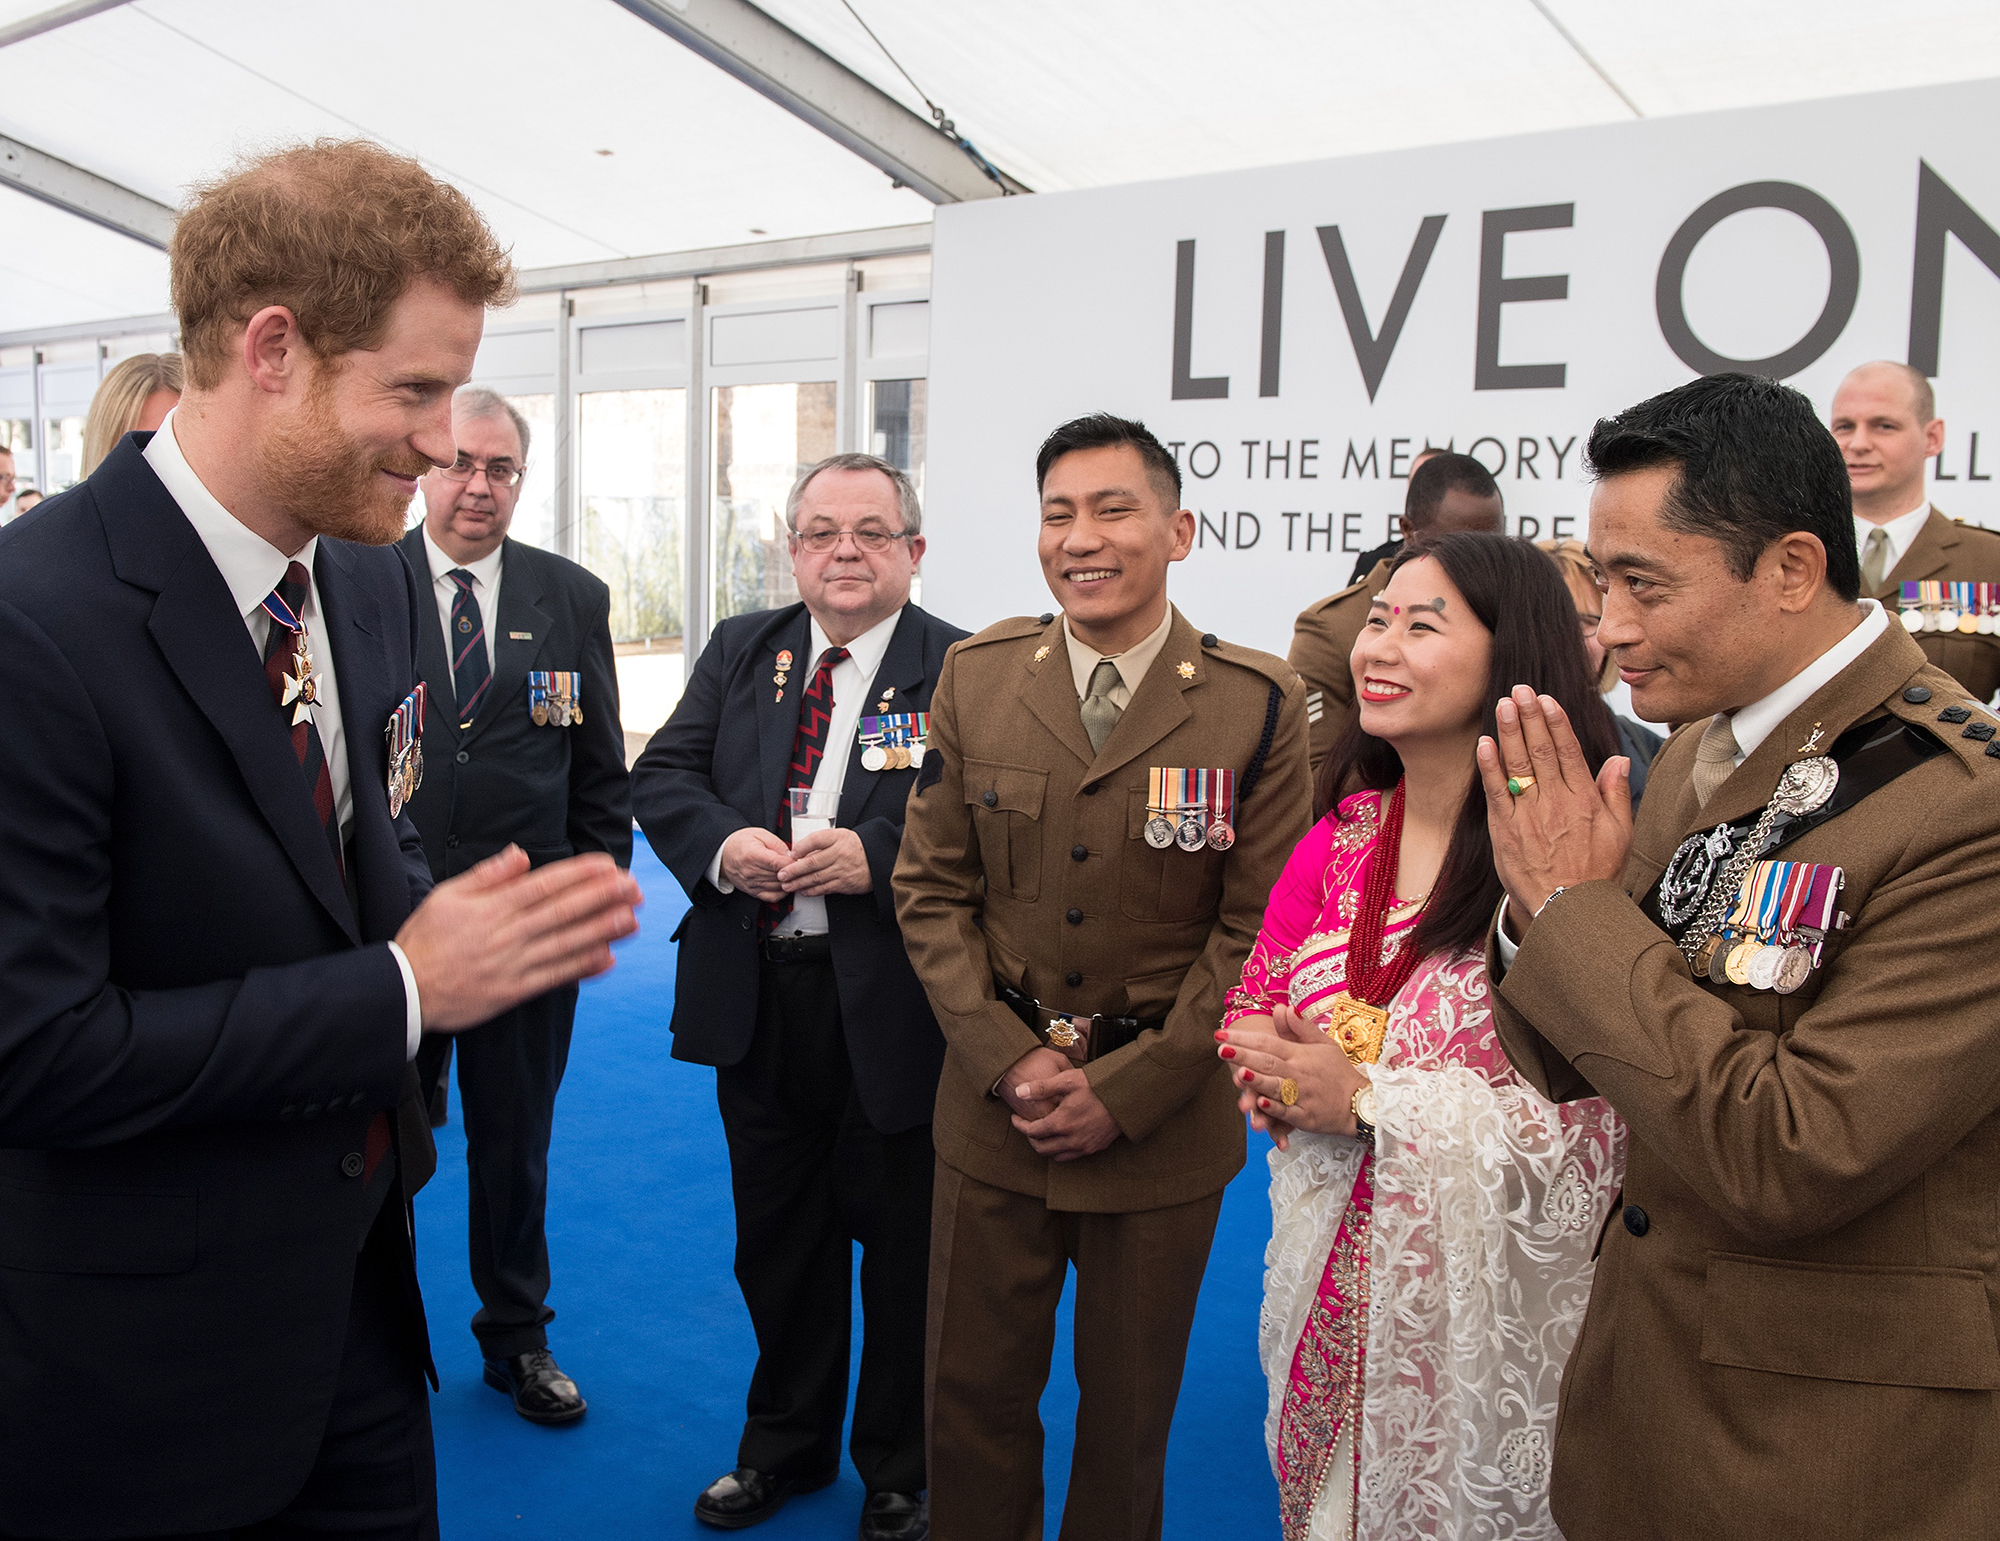 The Royal Family attend an Iraq and Afghanistan Memorial reception